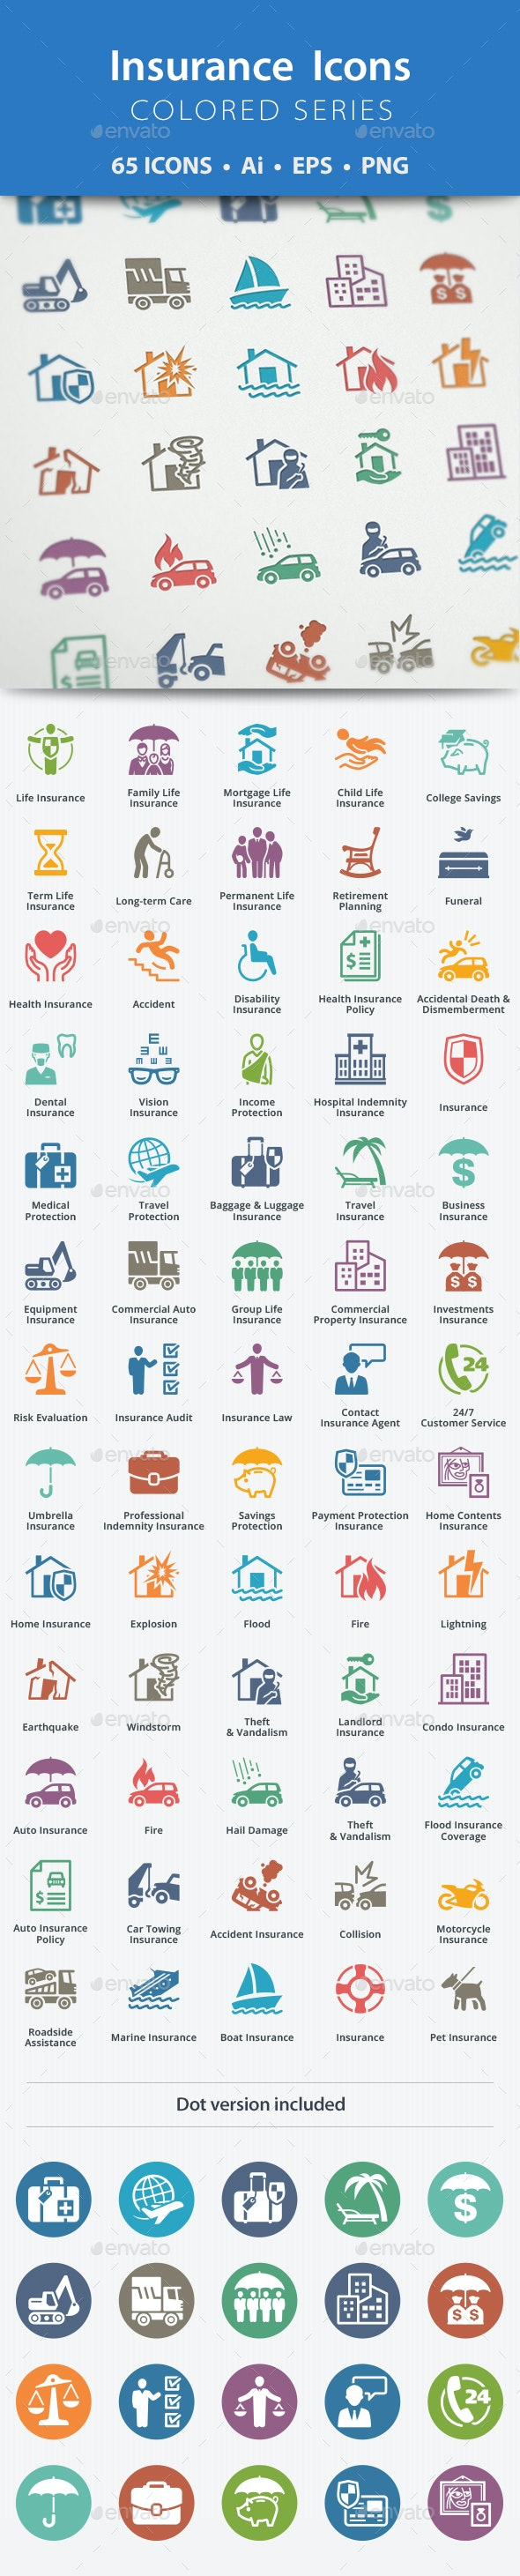 Insurance Icons - Colored Series - Business Icons